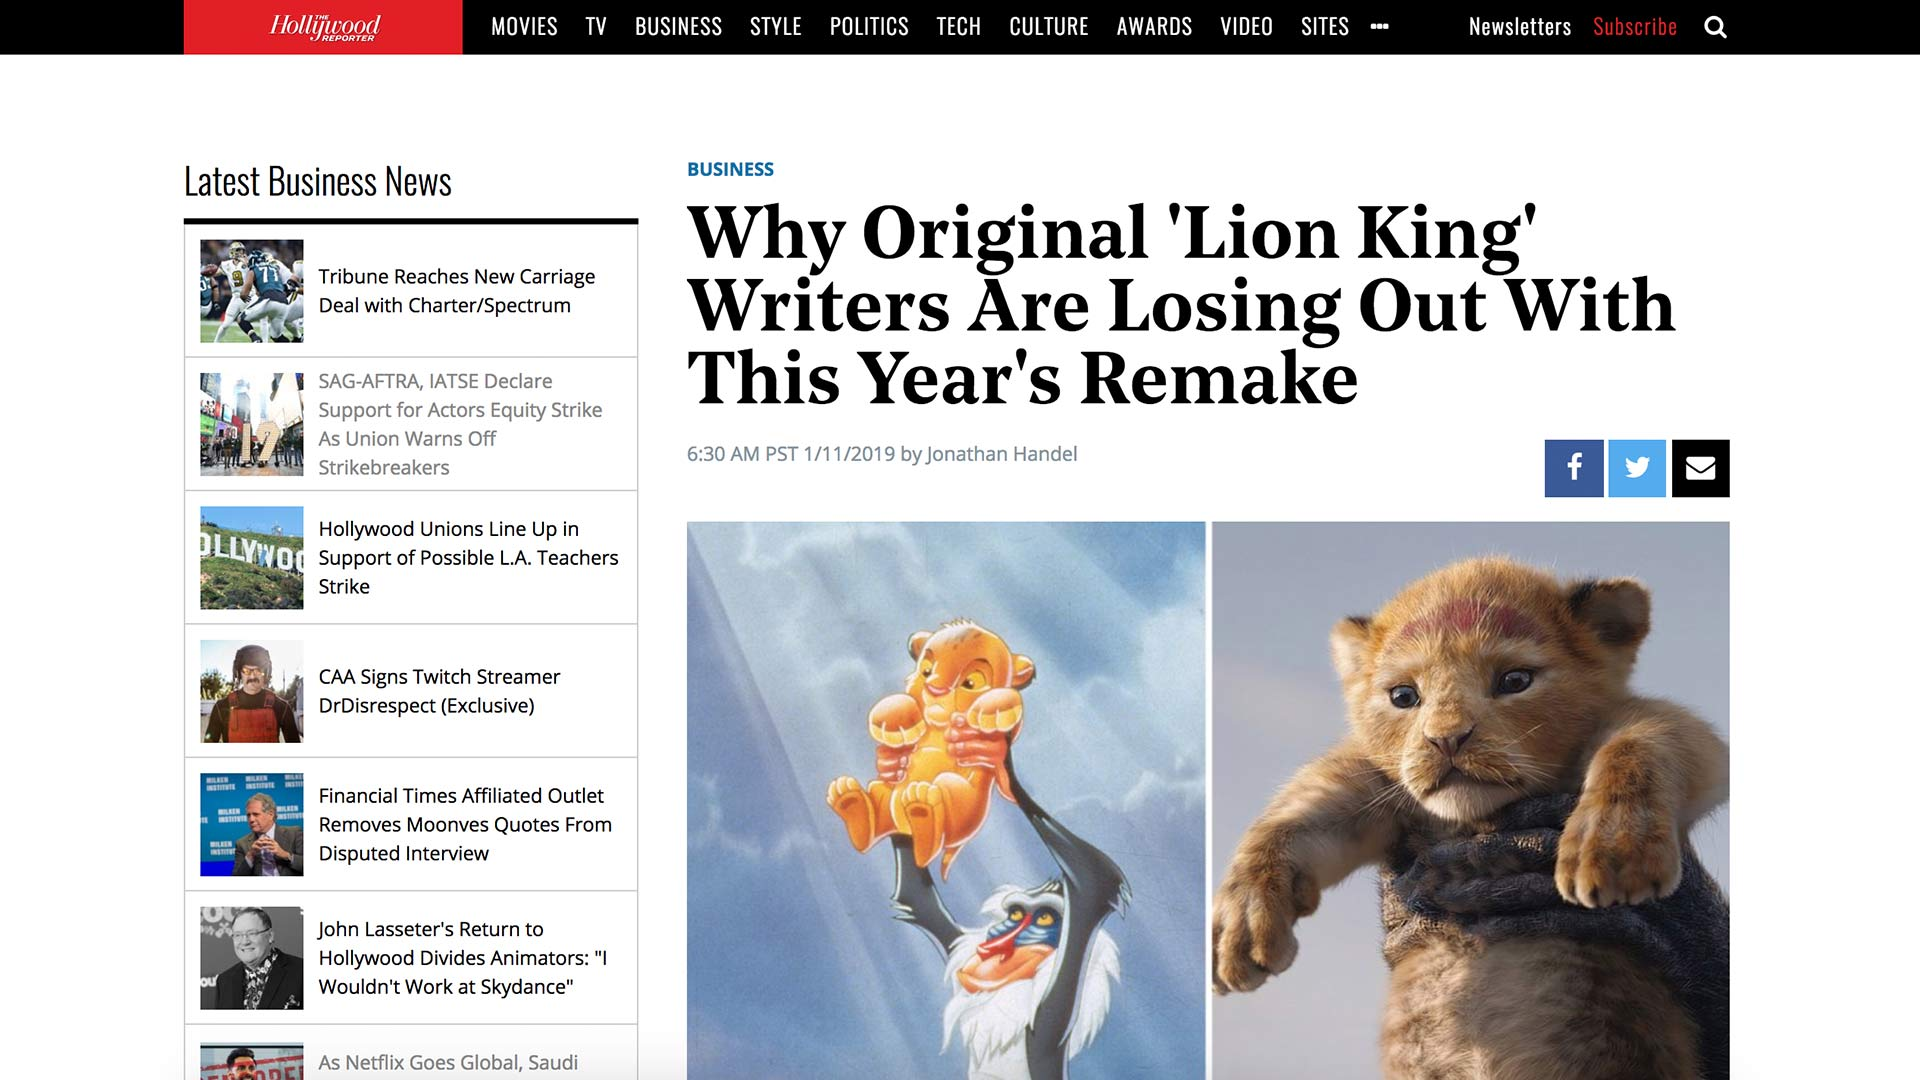 Fairness Rocks News Why Original 'Lion King' Writers Are Losing Out With This Year's Remake